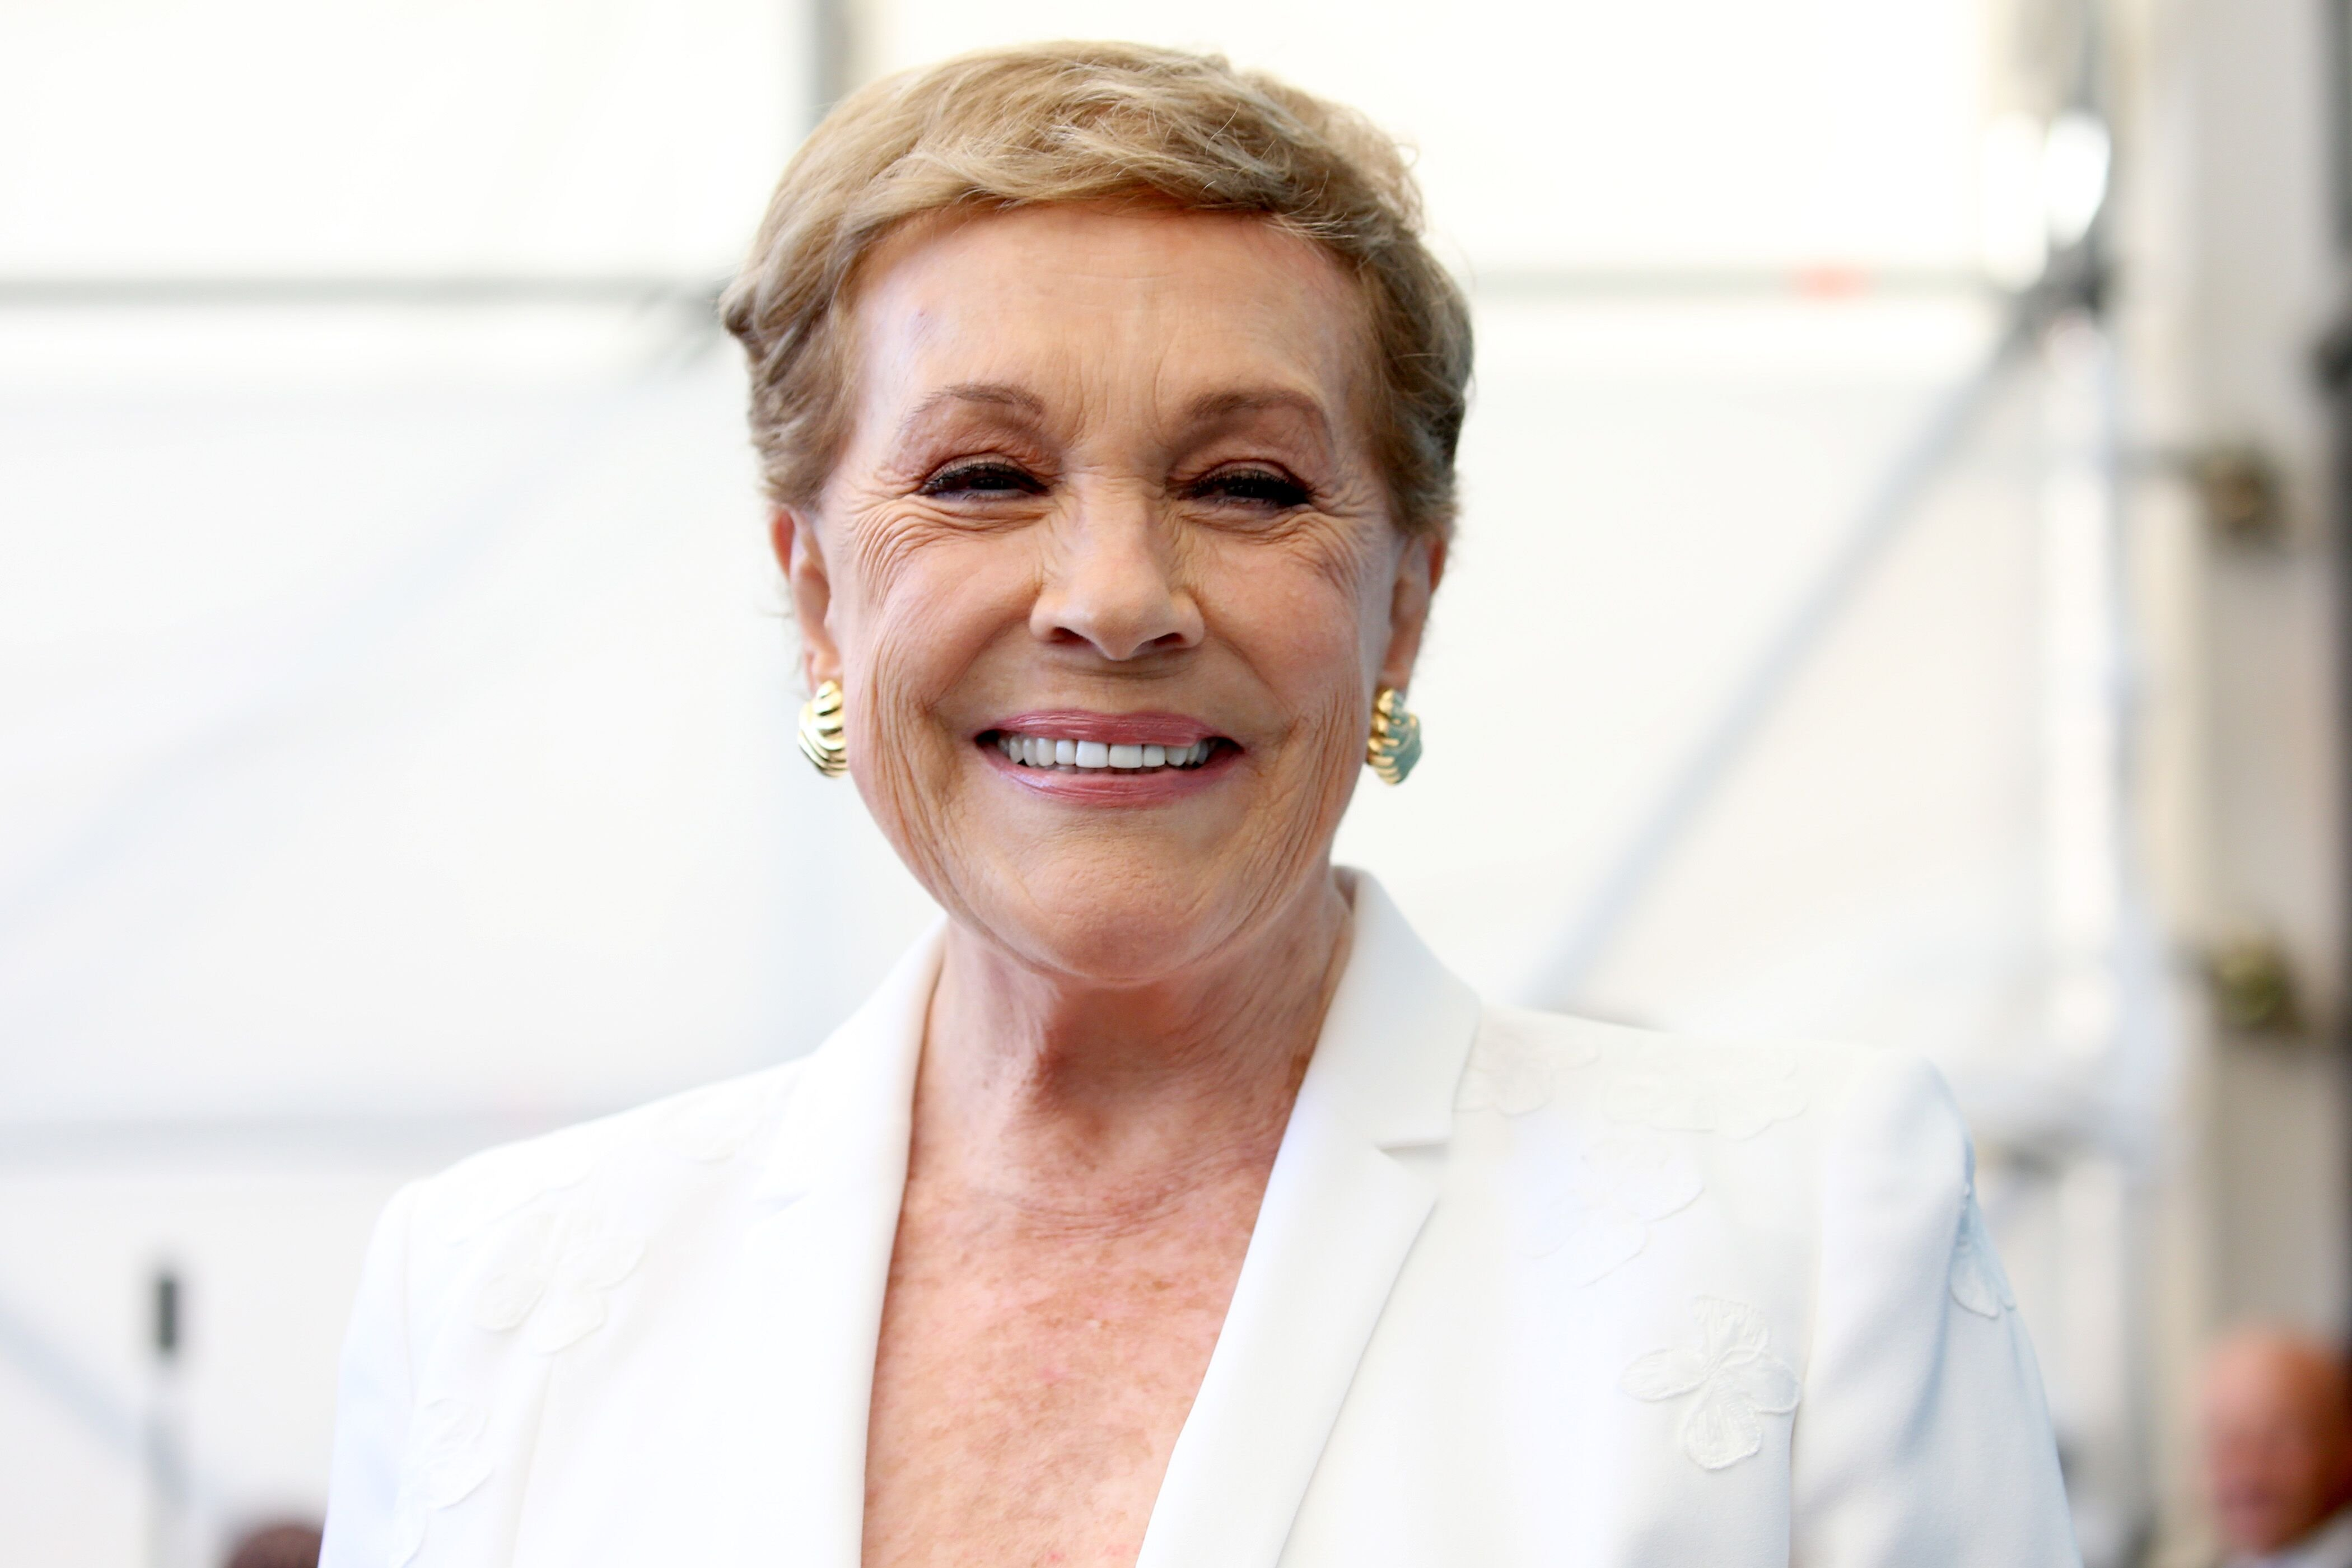 Julie Andrews attends the Golden Lion for Lifetime Achievement photocall. | Source: Getty Images